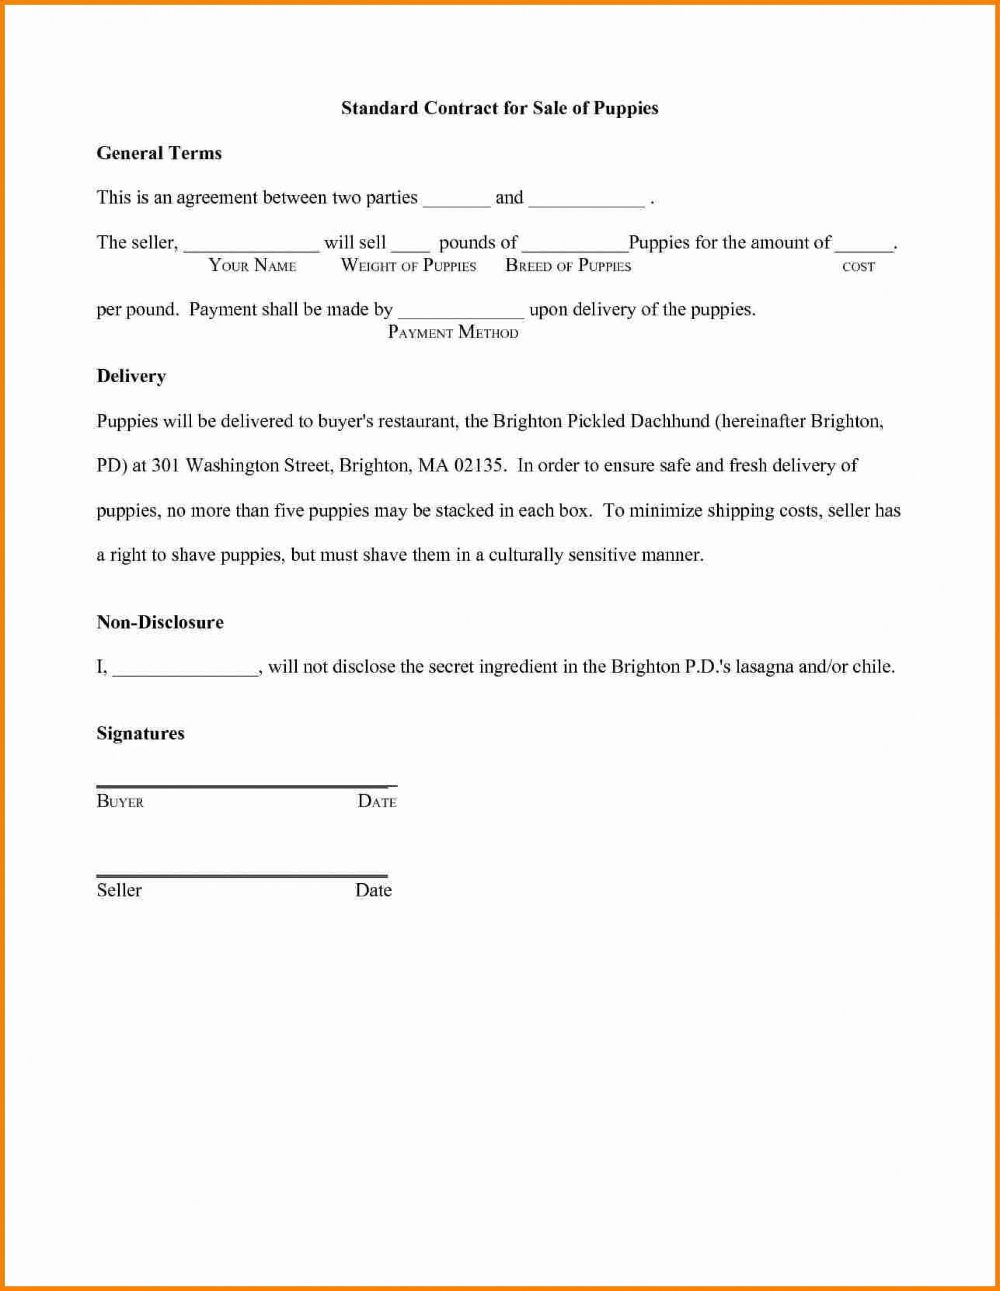 Agreement Letter Between Two People : agreement, letter, between, people, Template, Ideas, Agreement, Between, Parties, Money, Within, Promotion, Prof…, Contract, Template,, Lettering,, Letter, Templates